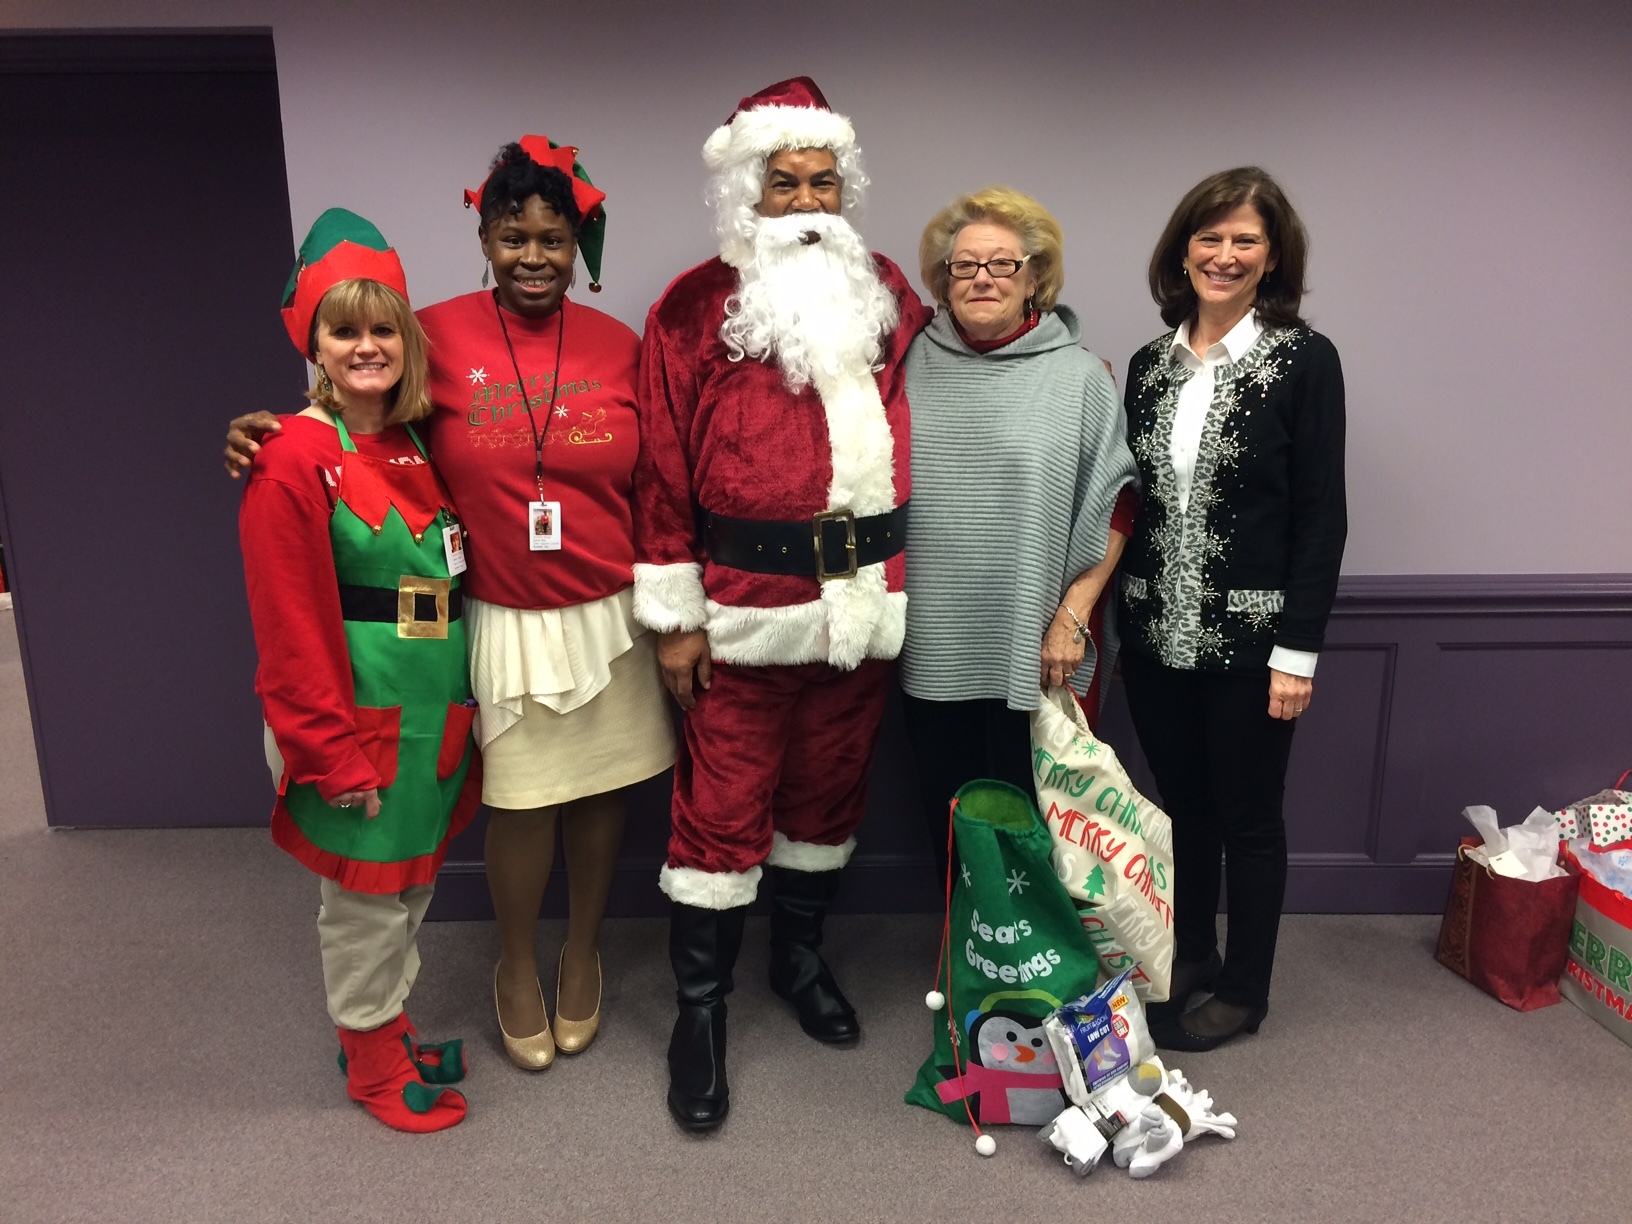 Man dressed as santa with staff members and socks